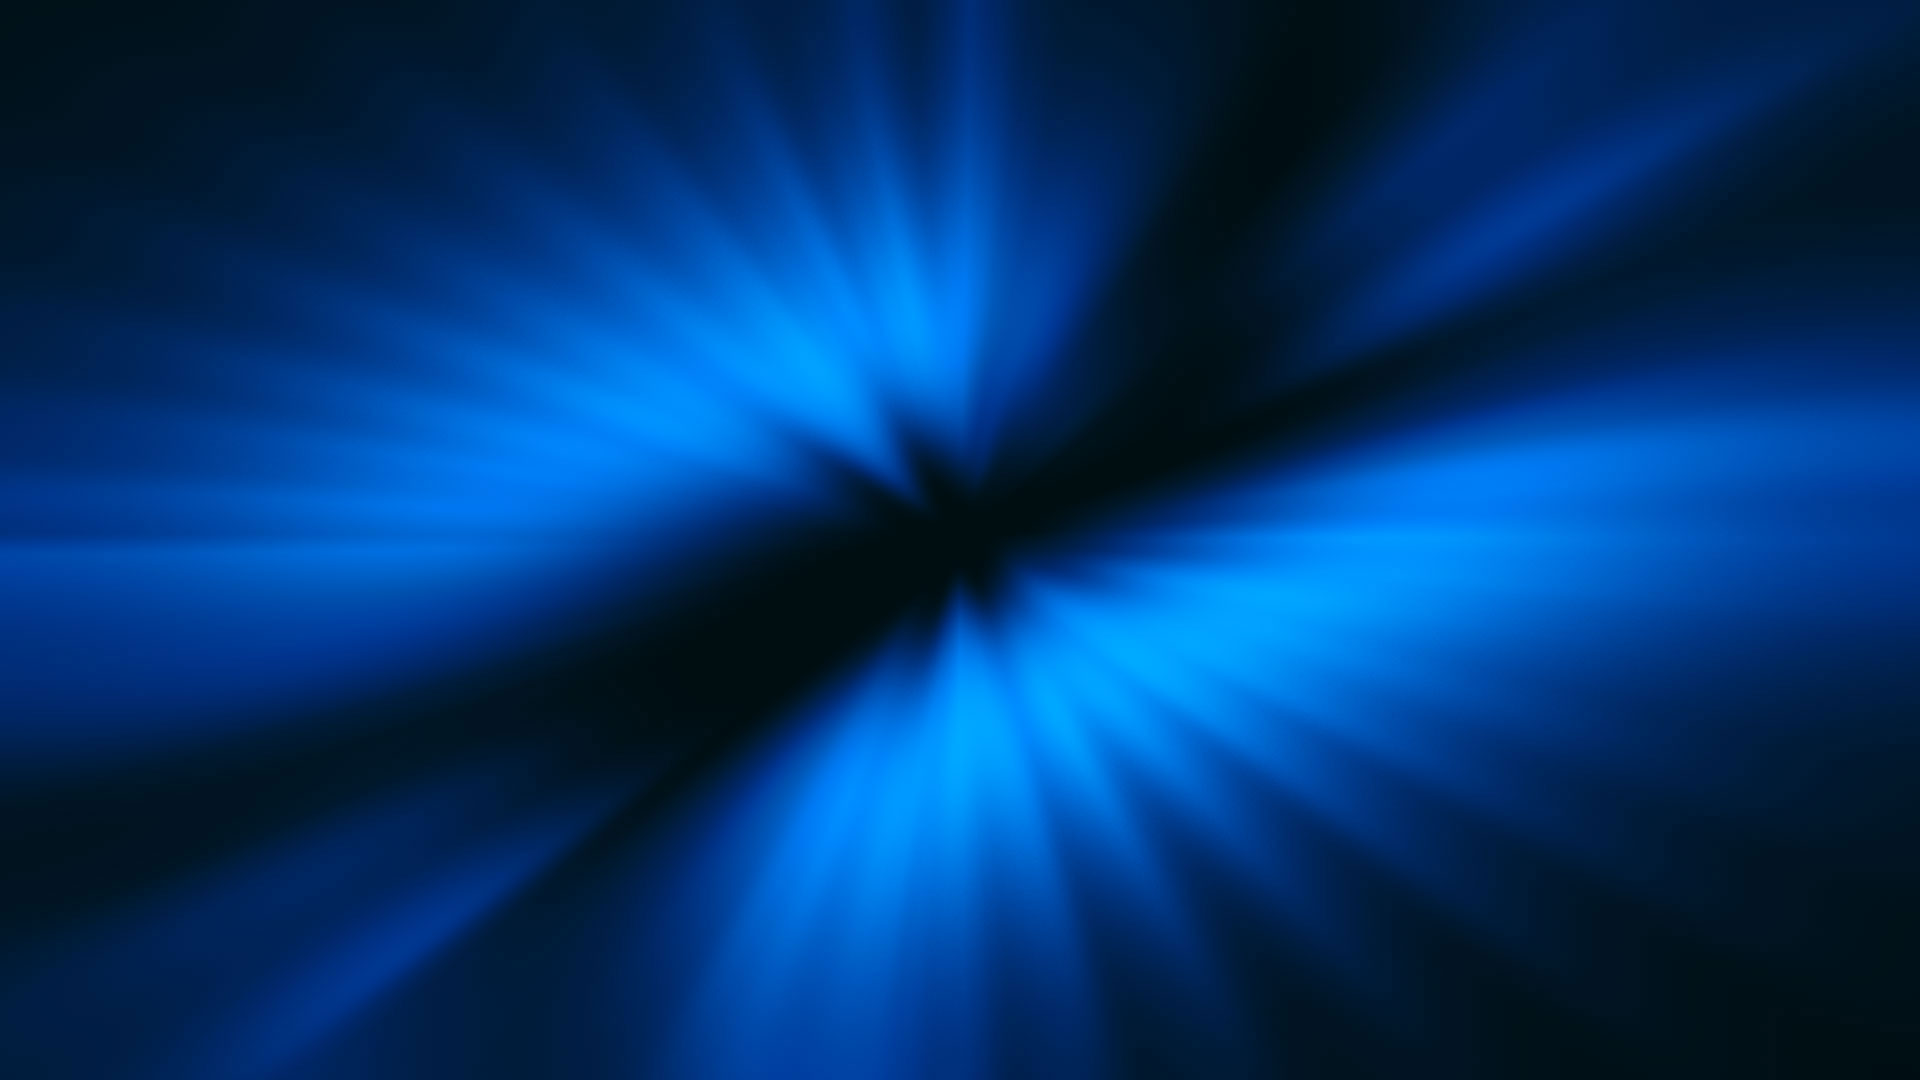 Dark Space Background Blue on Black 1920x1080